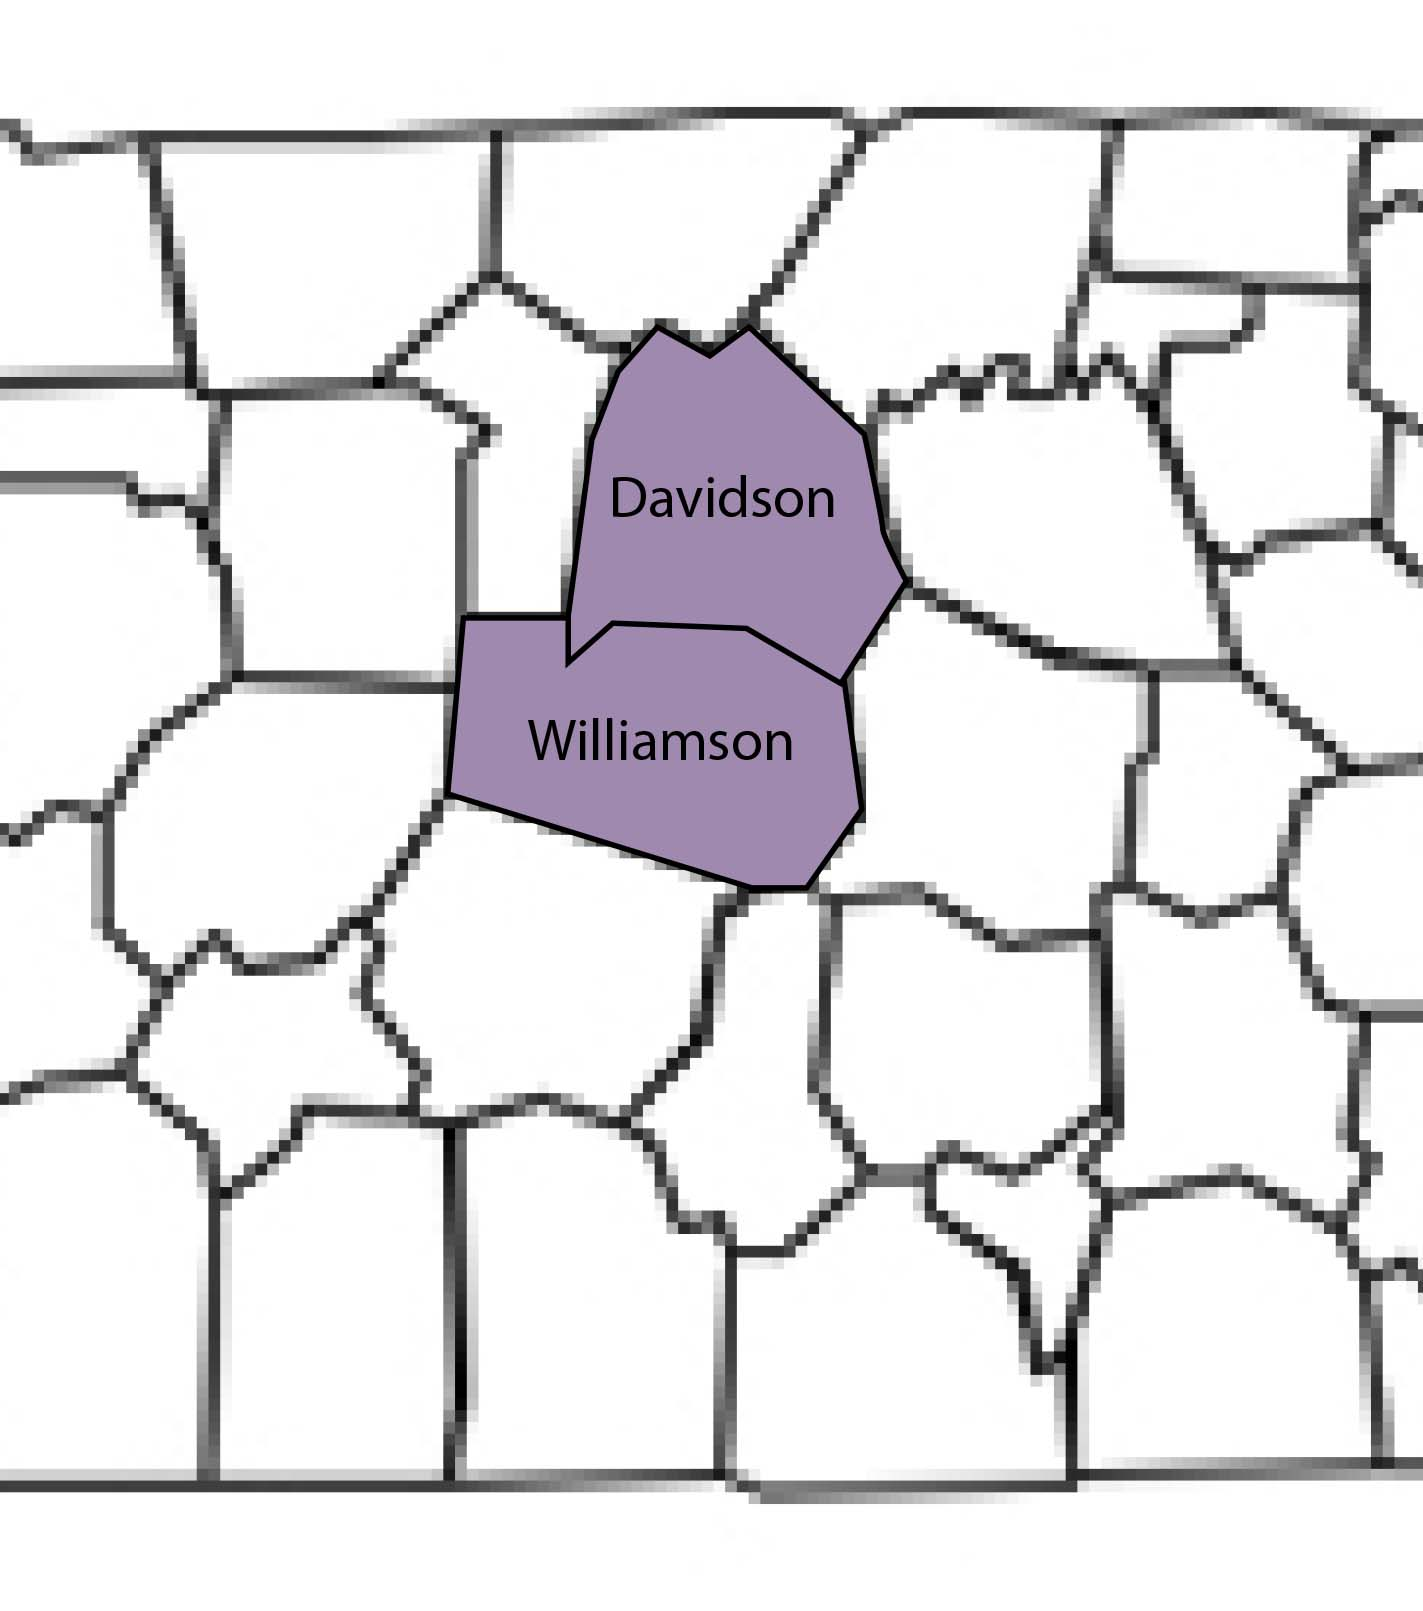 Achieve Beyond provides autism services in these counties in the state of Tennessee